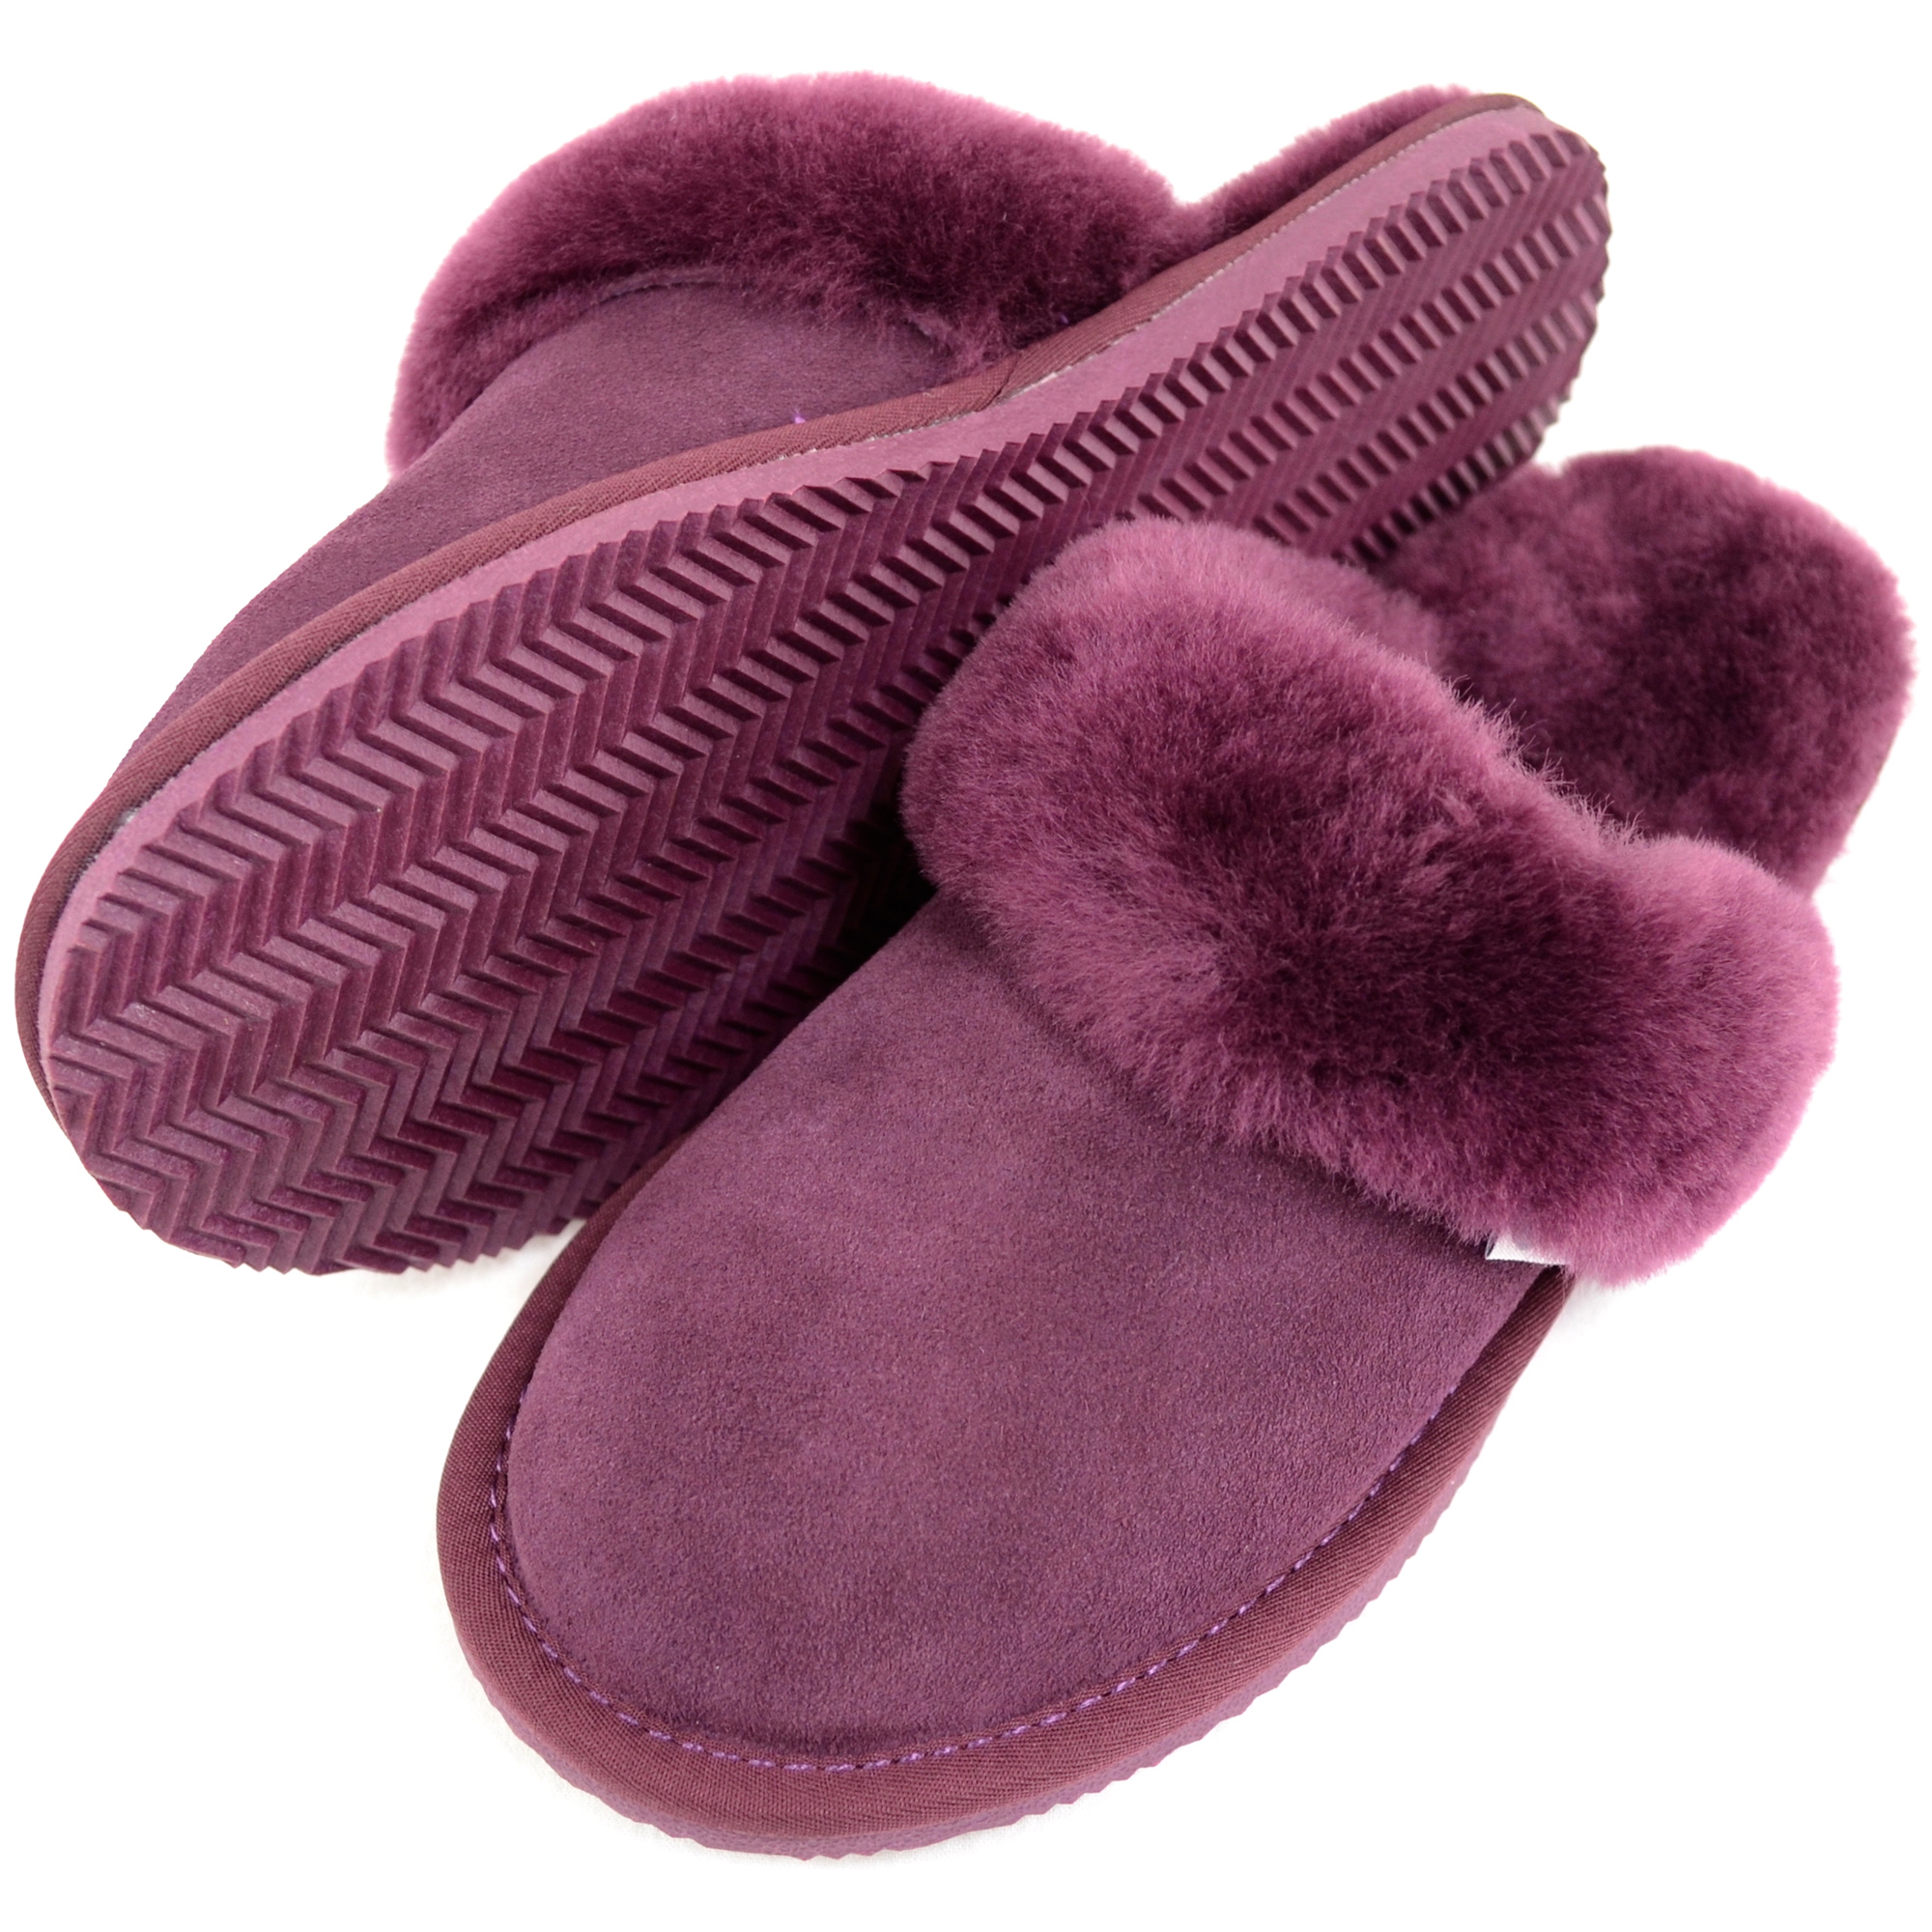 Snugrugs - Ladies Sheepskin Mule Slippers - Plum